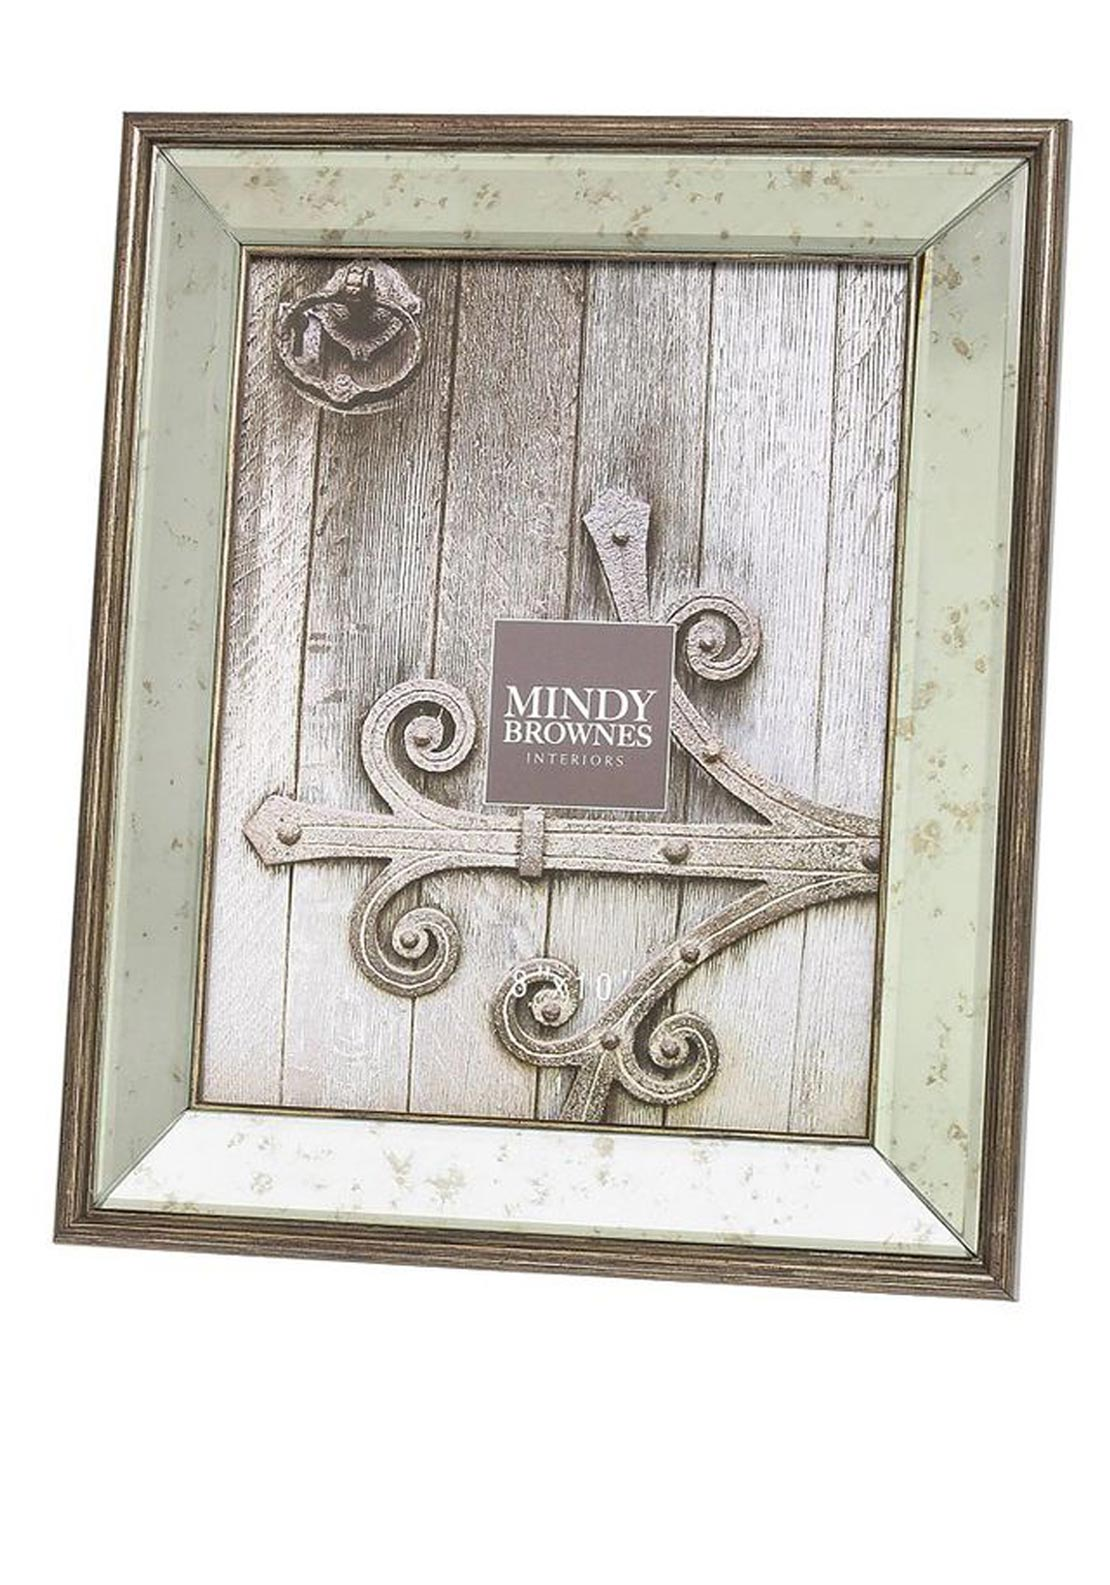 Mindy Brownes Kyra Photo Frame, 8 x 10 inches